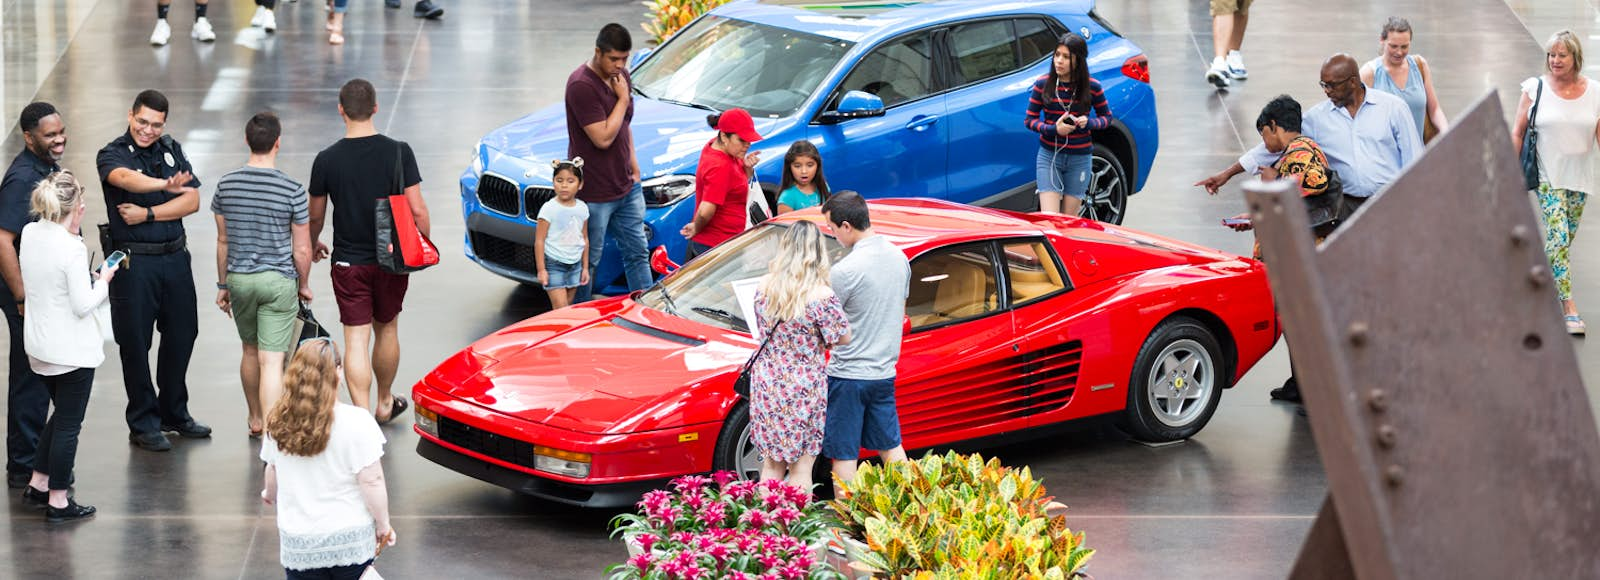 Auto Shows And Auctions In Dallas - Tex mex car show